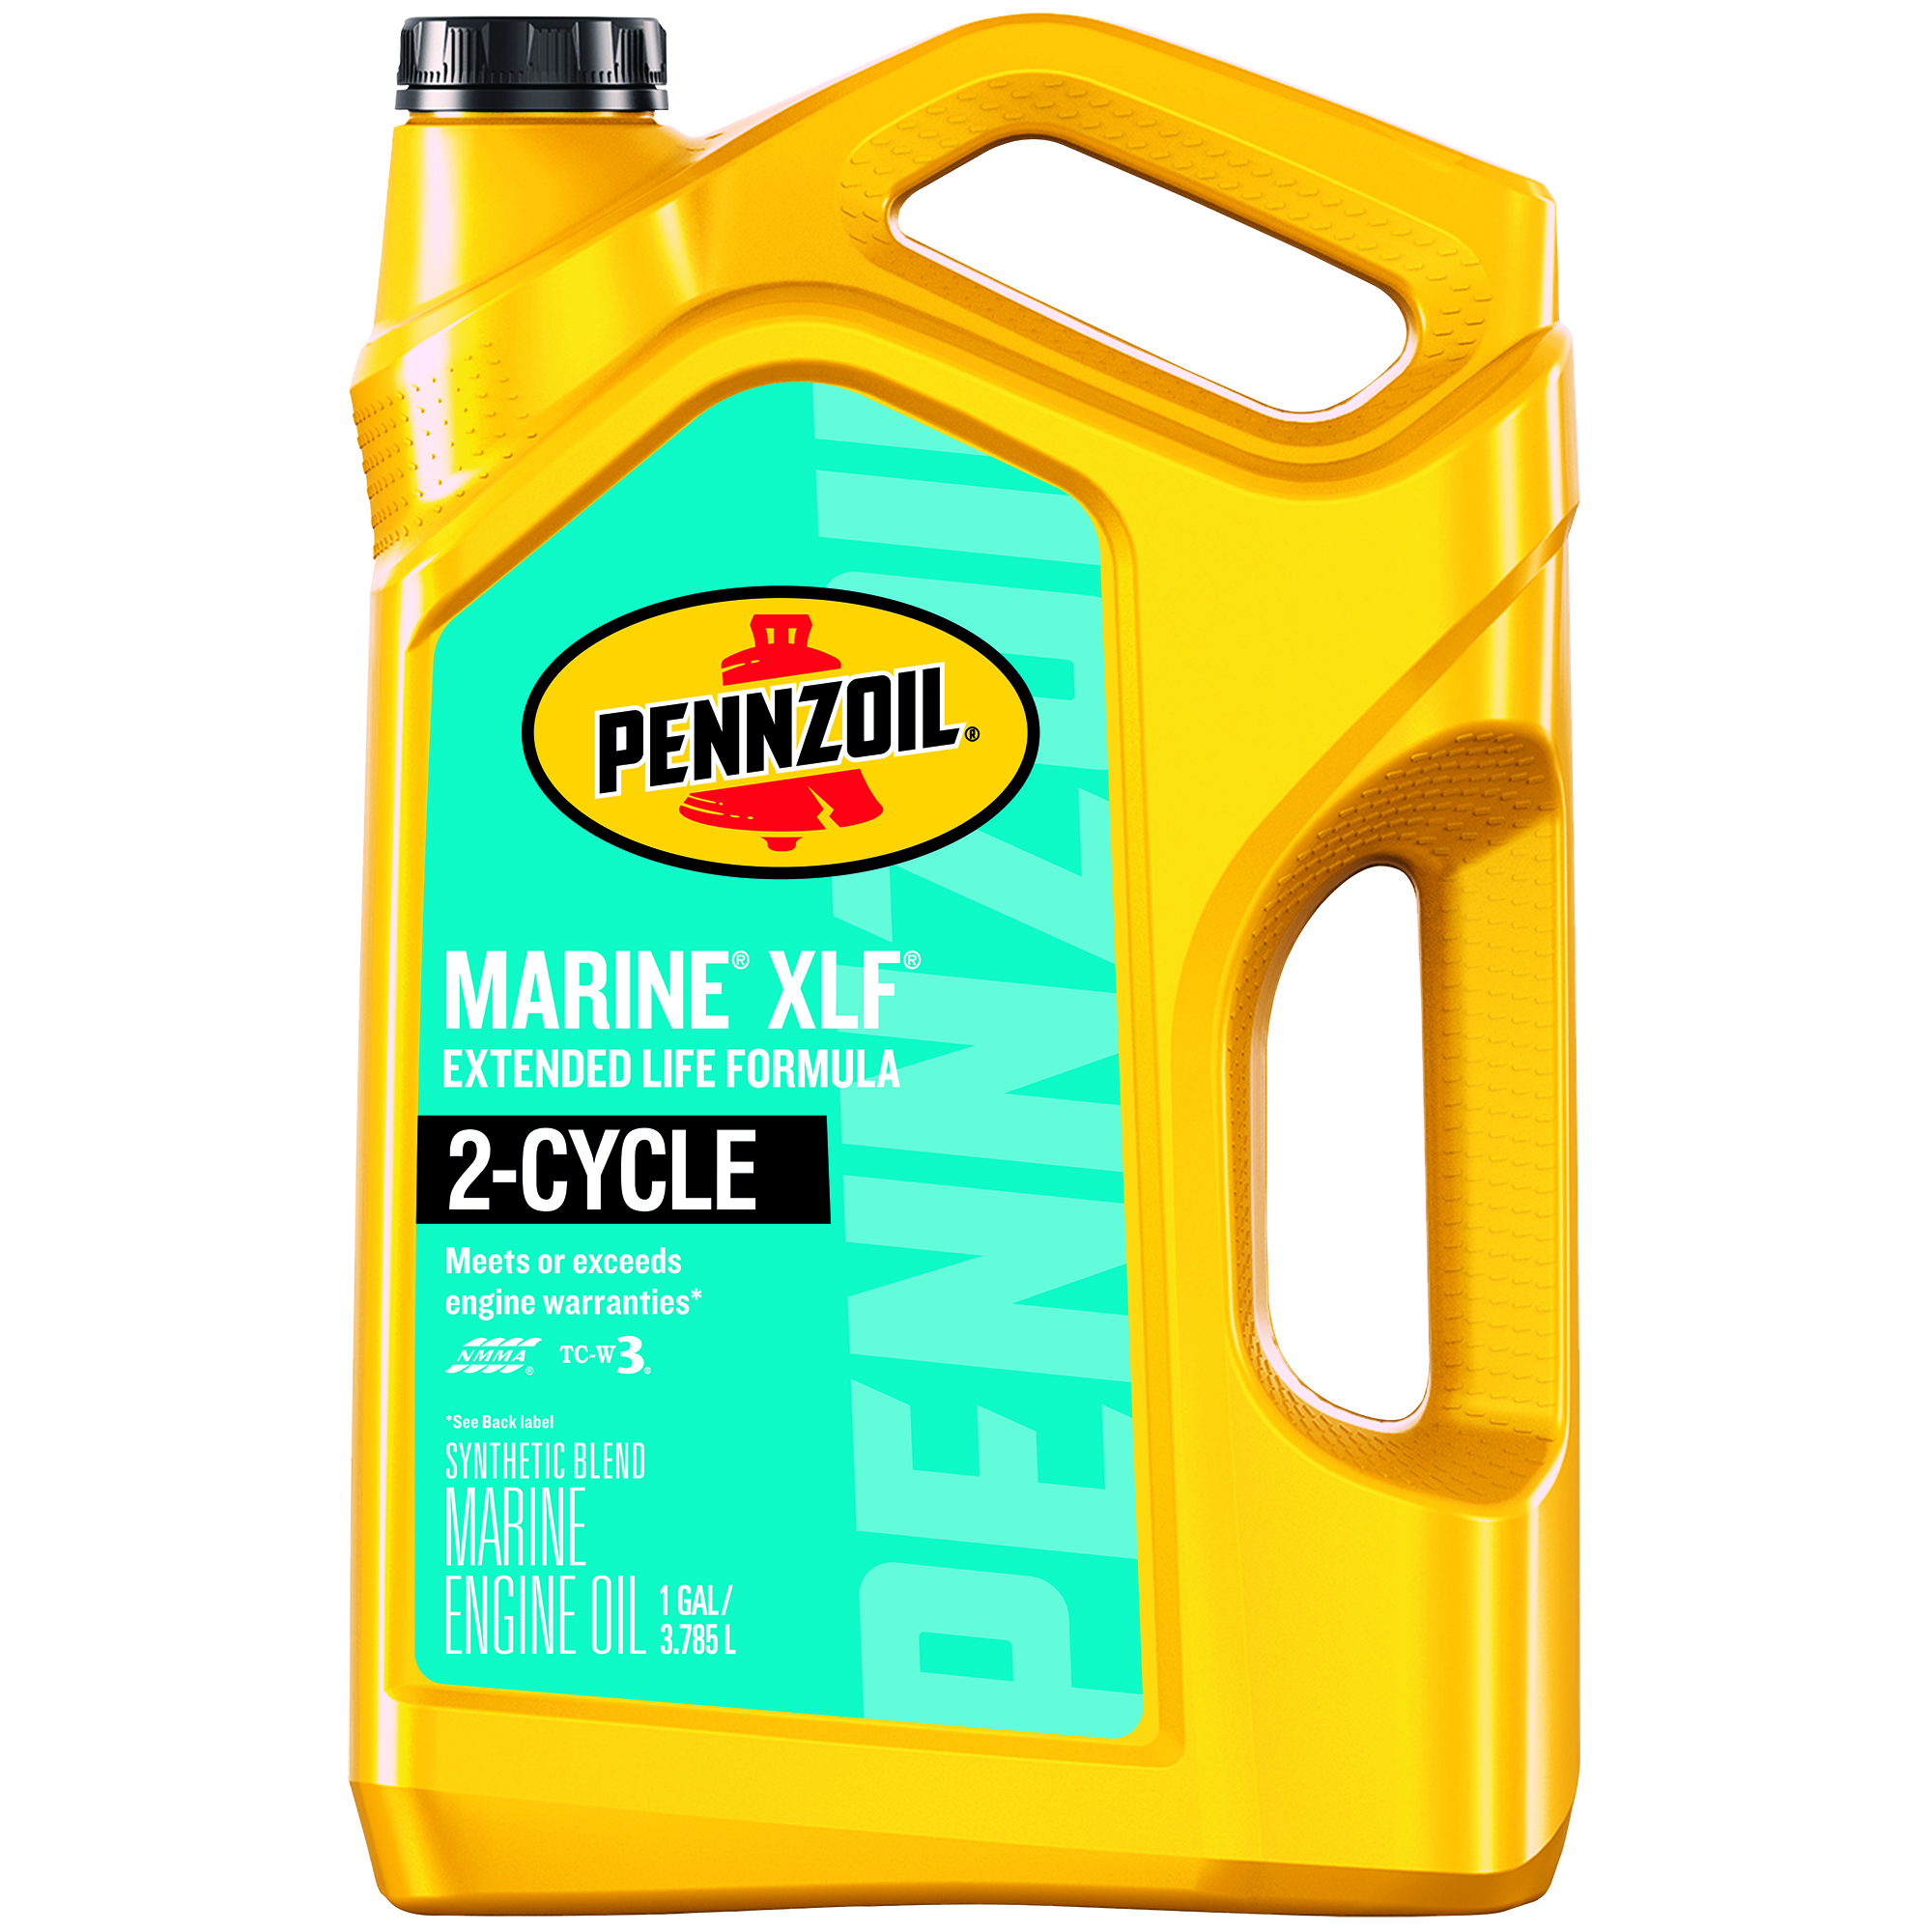 Pennzoil Marine XLF Synthetic Blend Engine Oil, 1 Gal